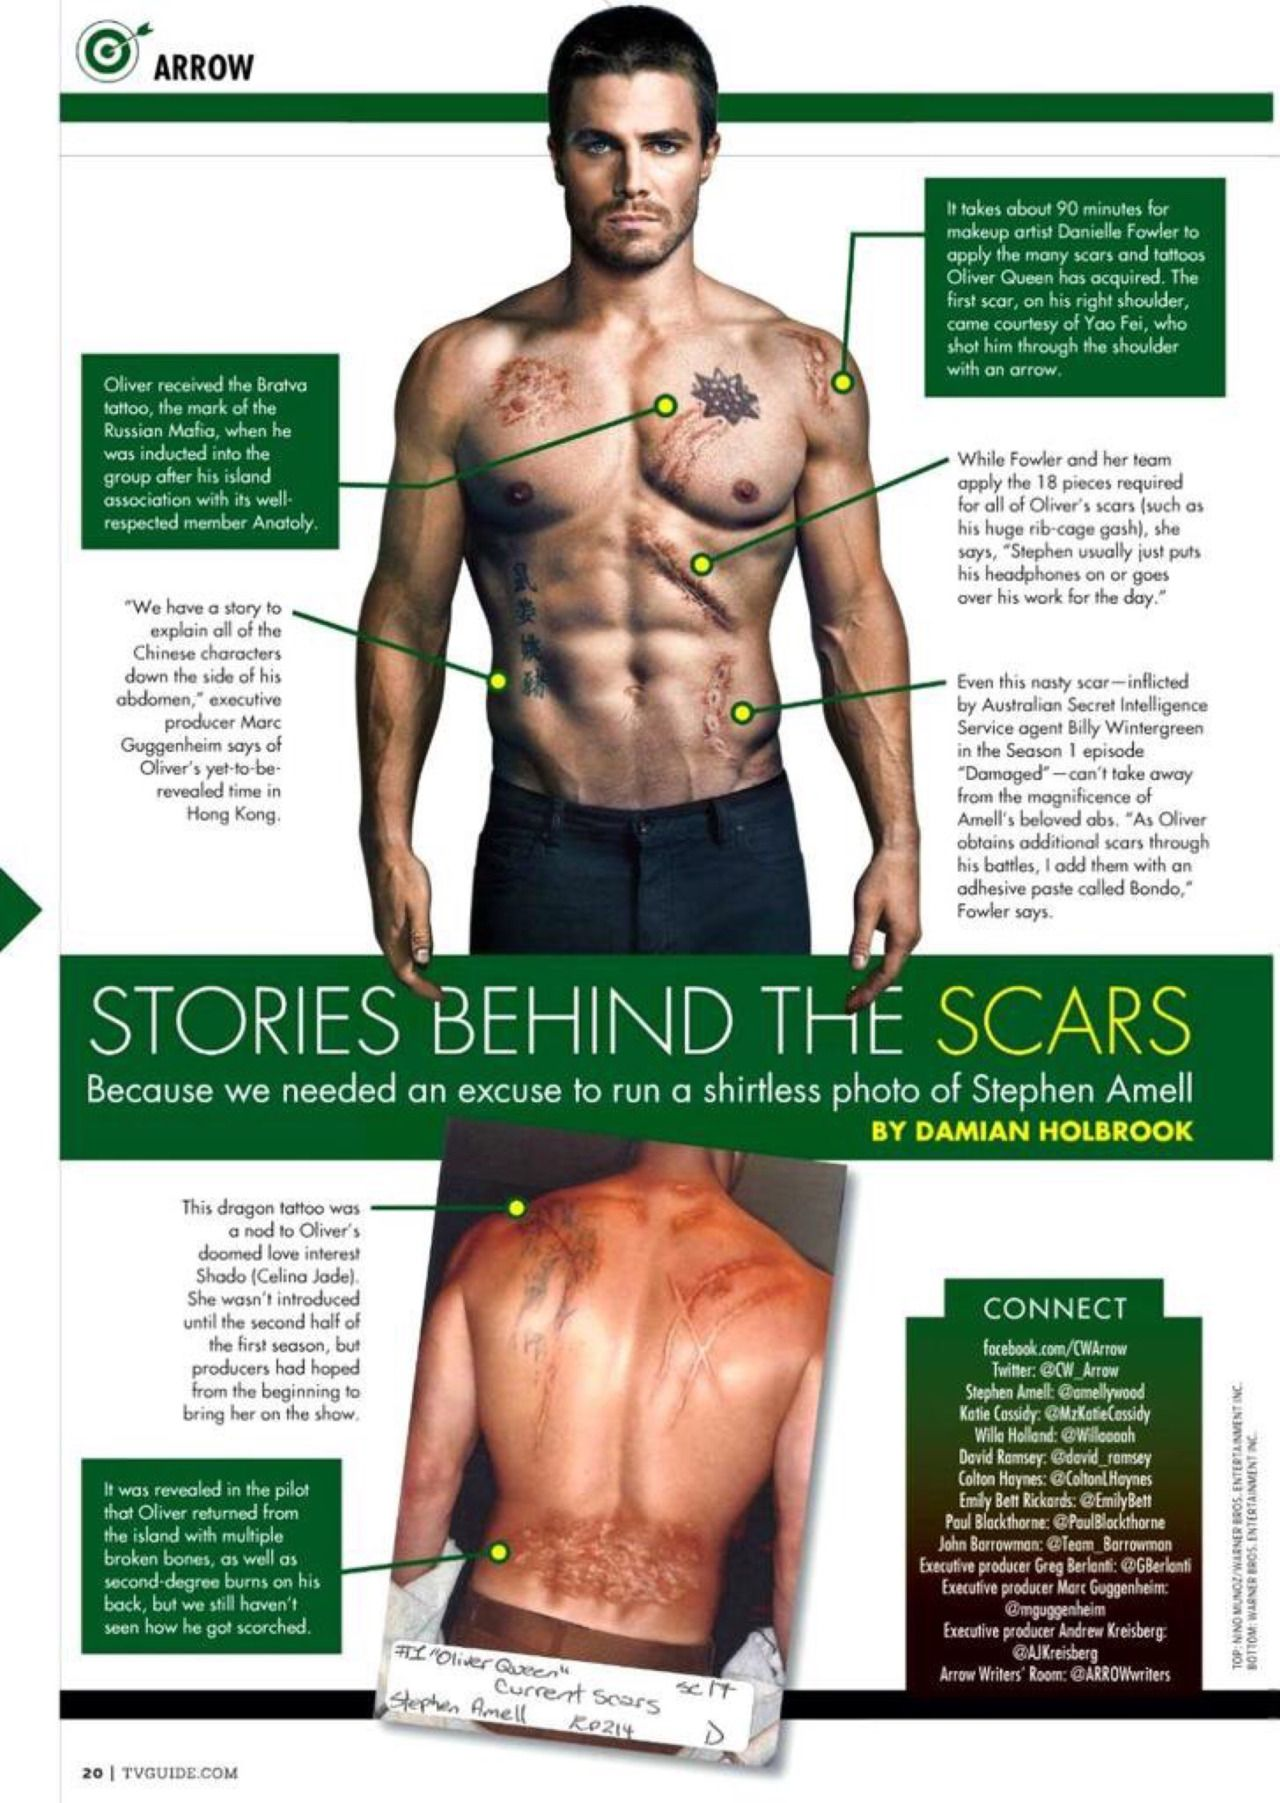 Stories Behind the Scars